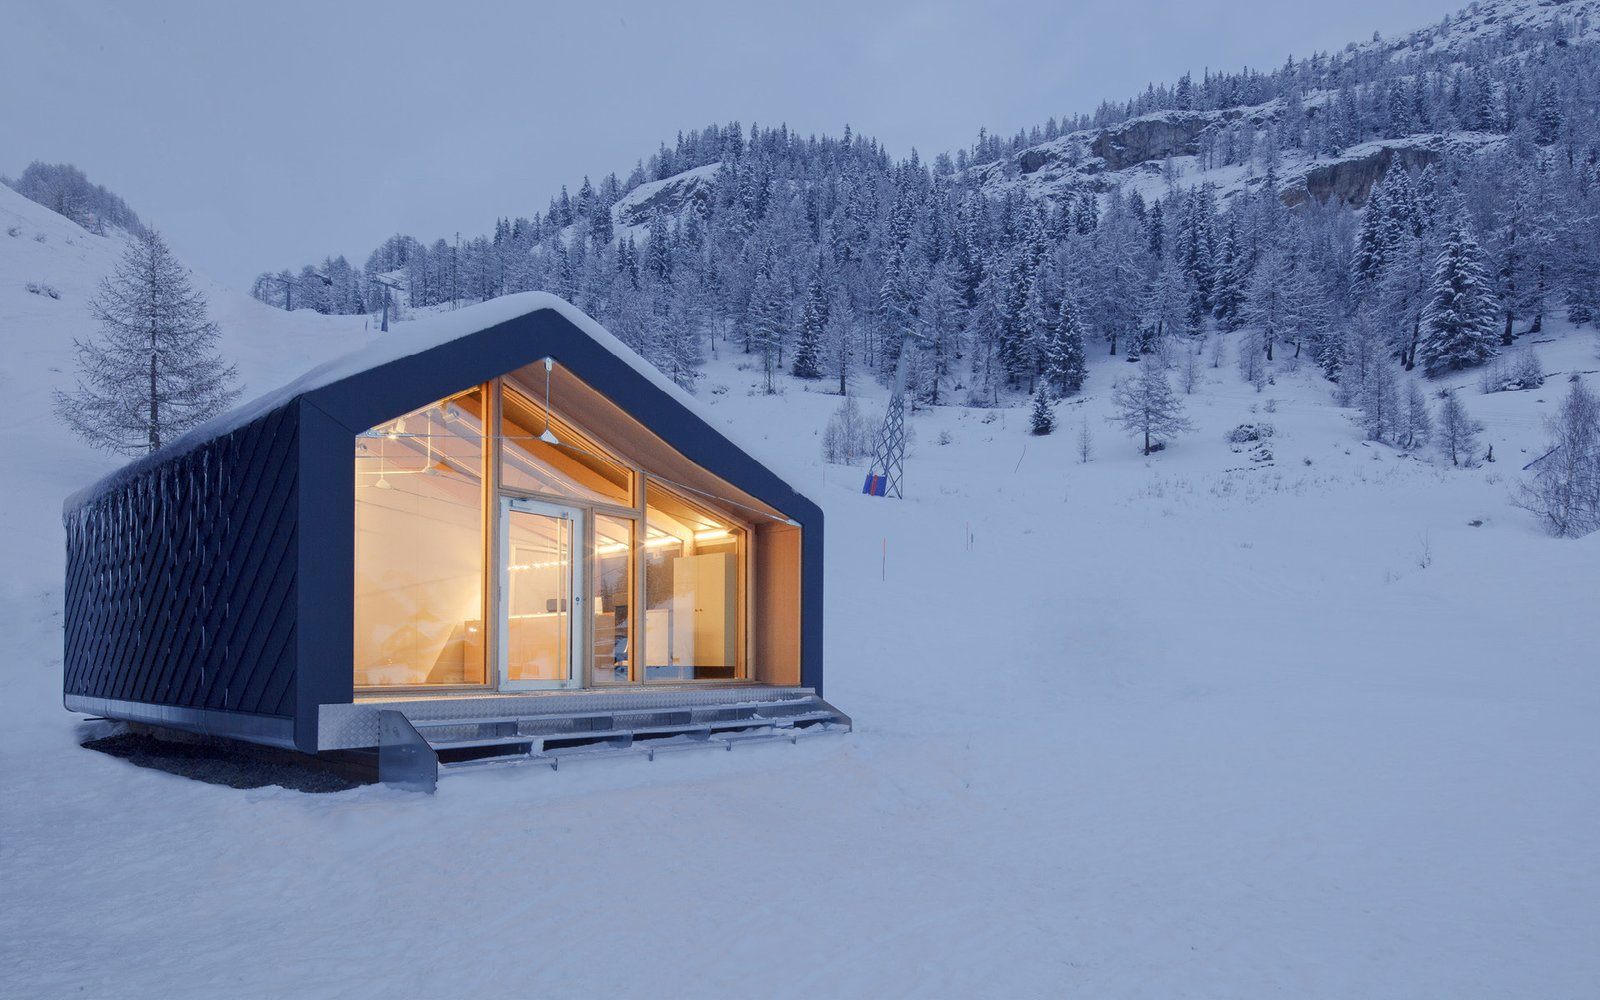 Exterior and Prefab Building Type Project Name: S3  Photo 6 of 20 in 19 Modern Prefab Companies Perfect for Mountain Living